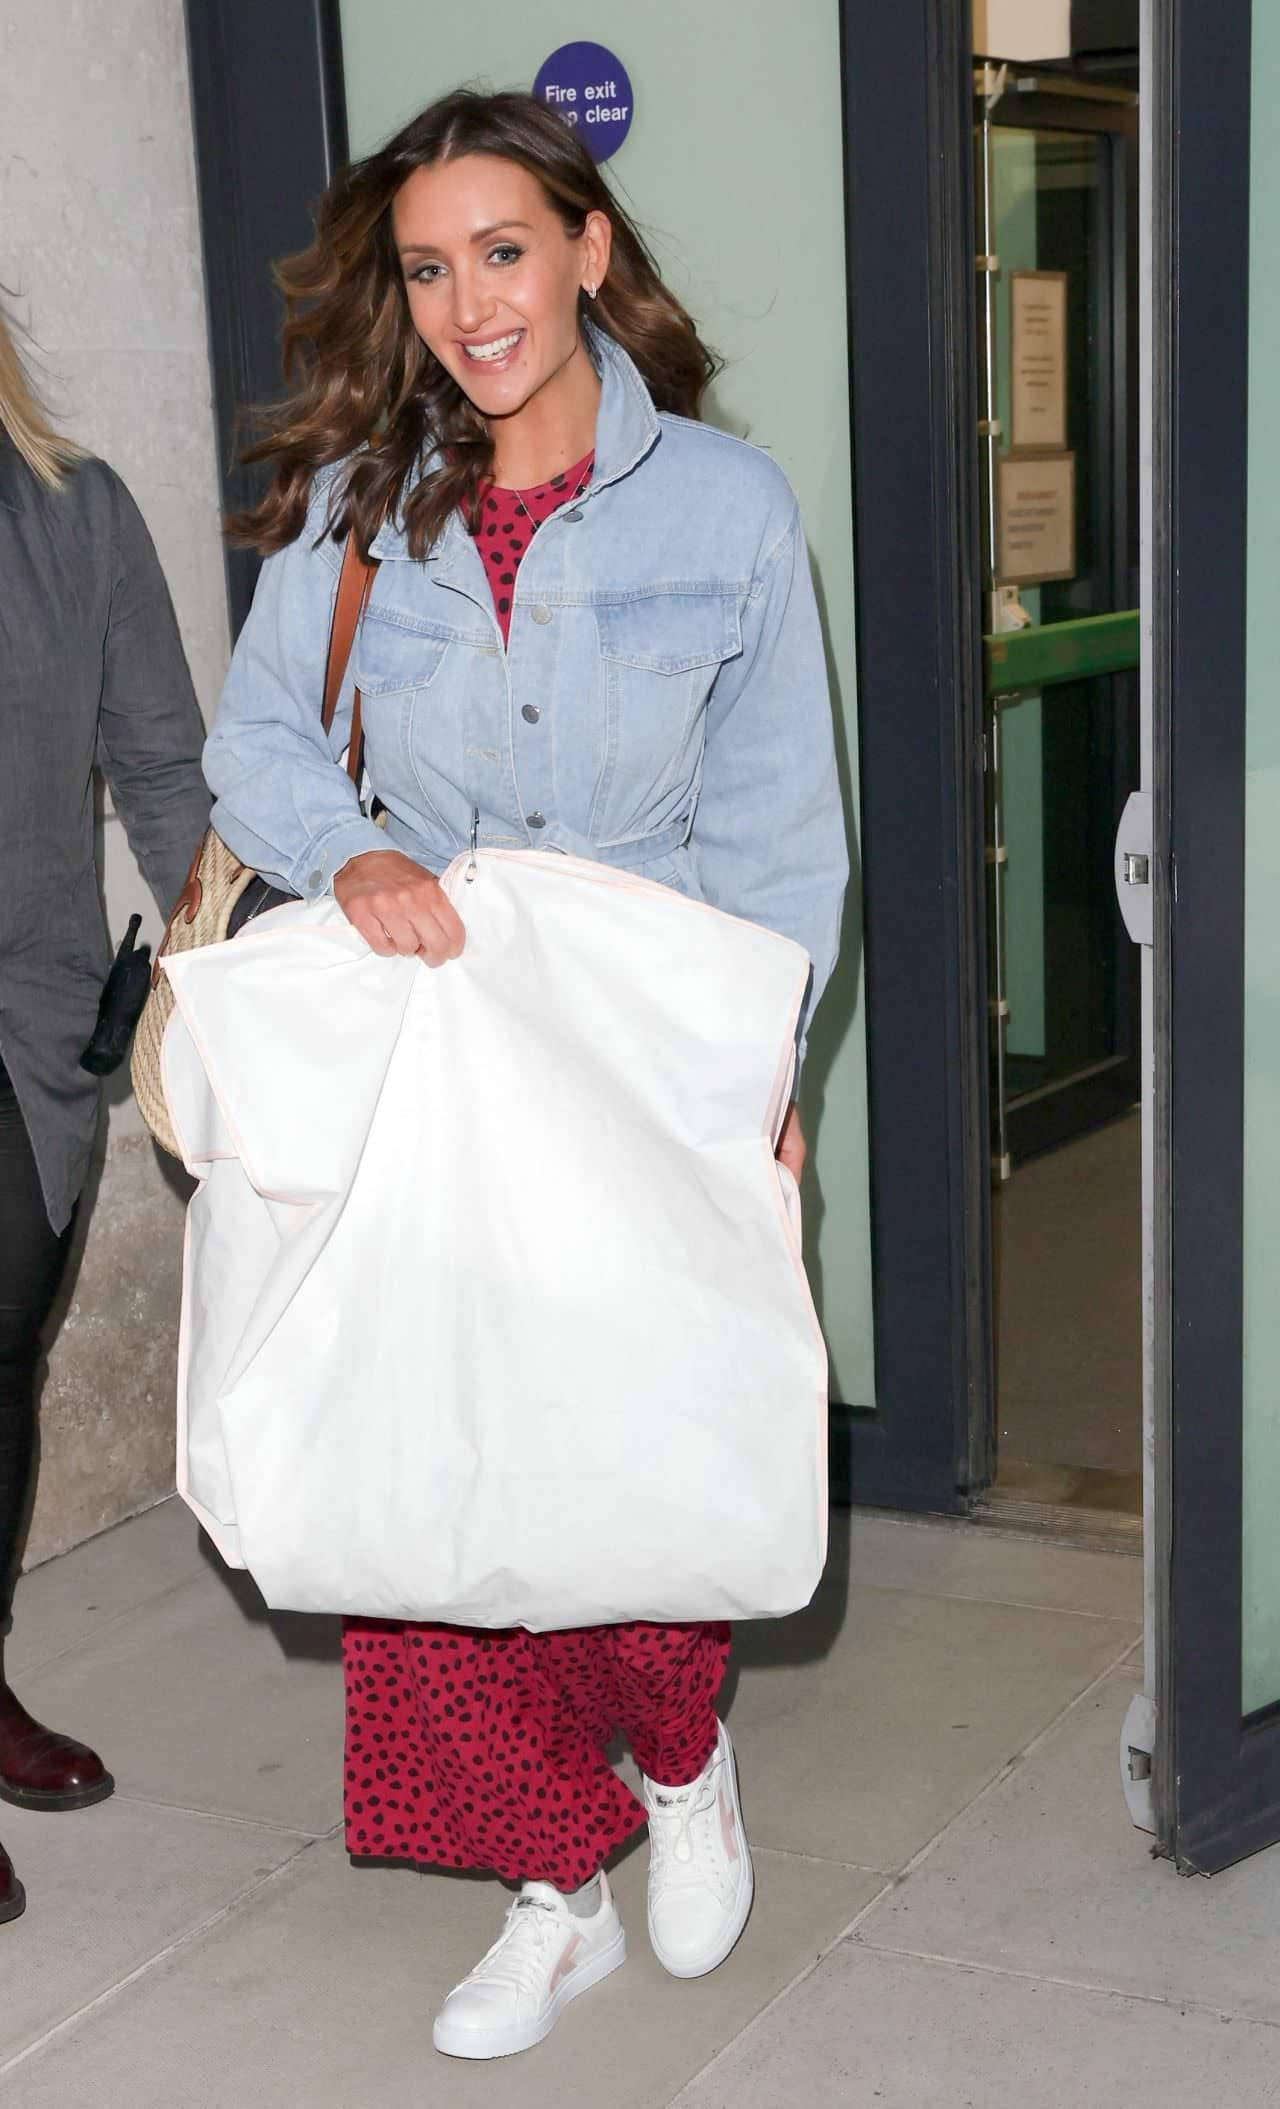 Catherine Tyldesley Stepped Out to Run Some Errands